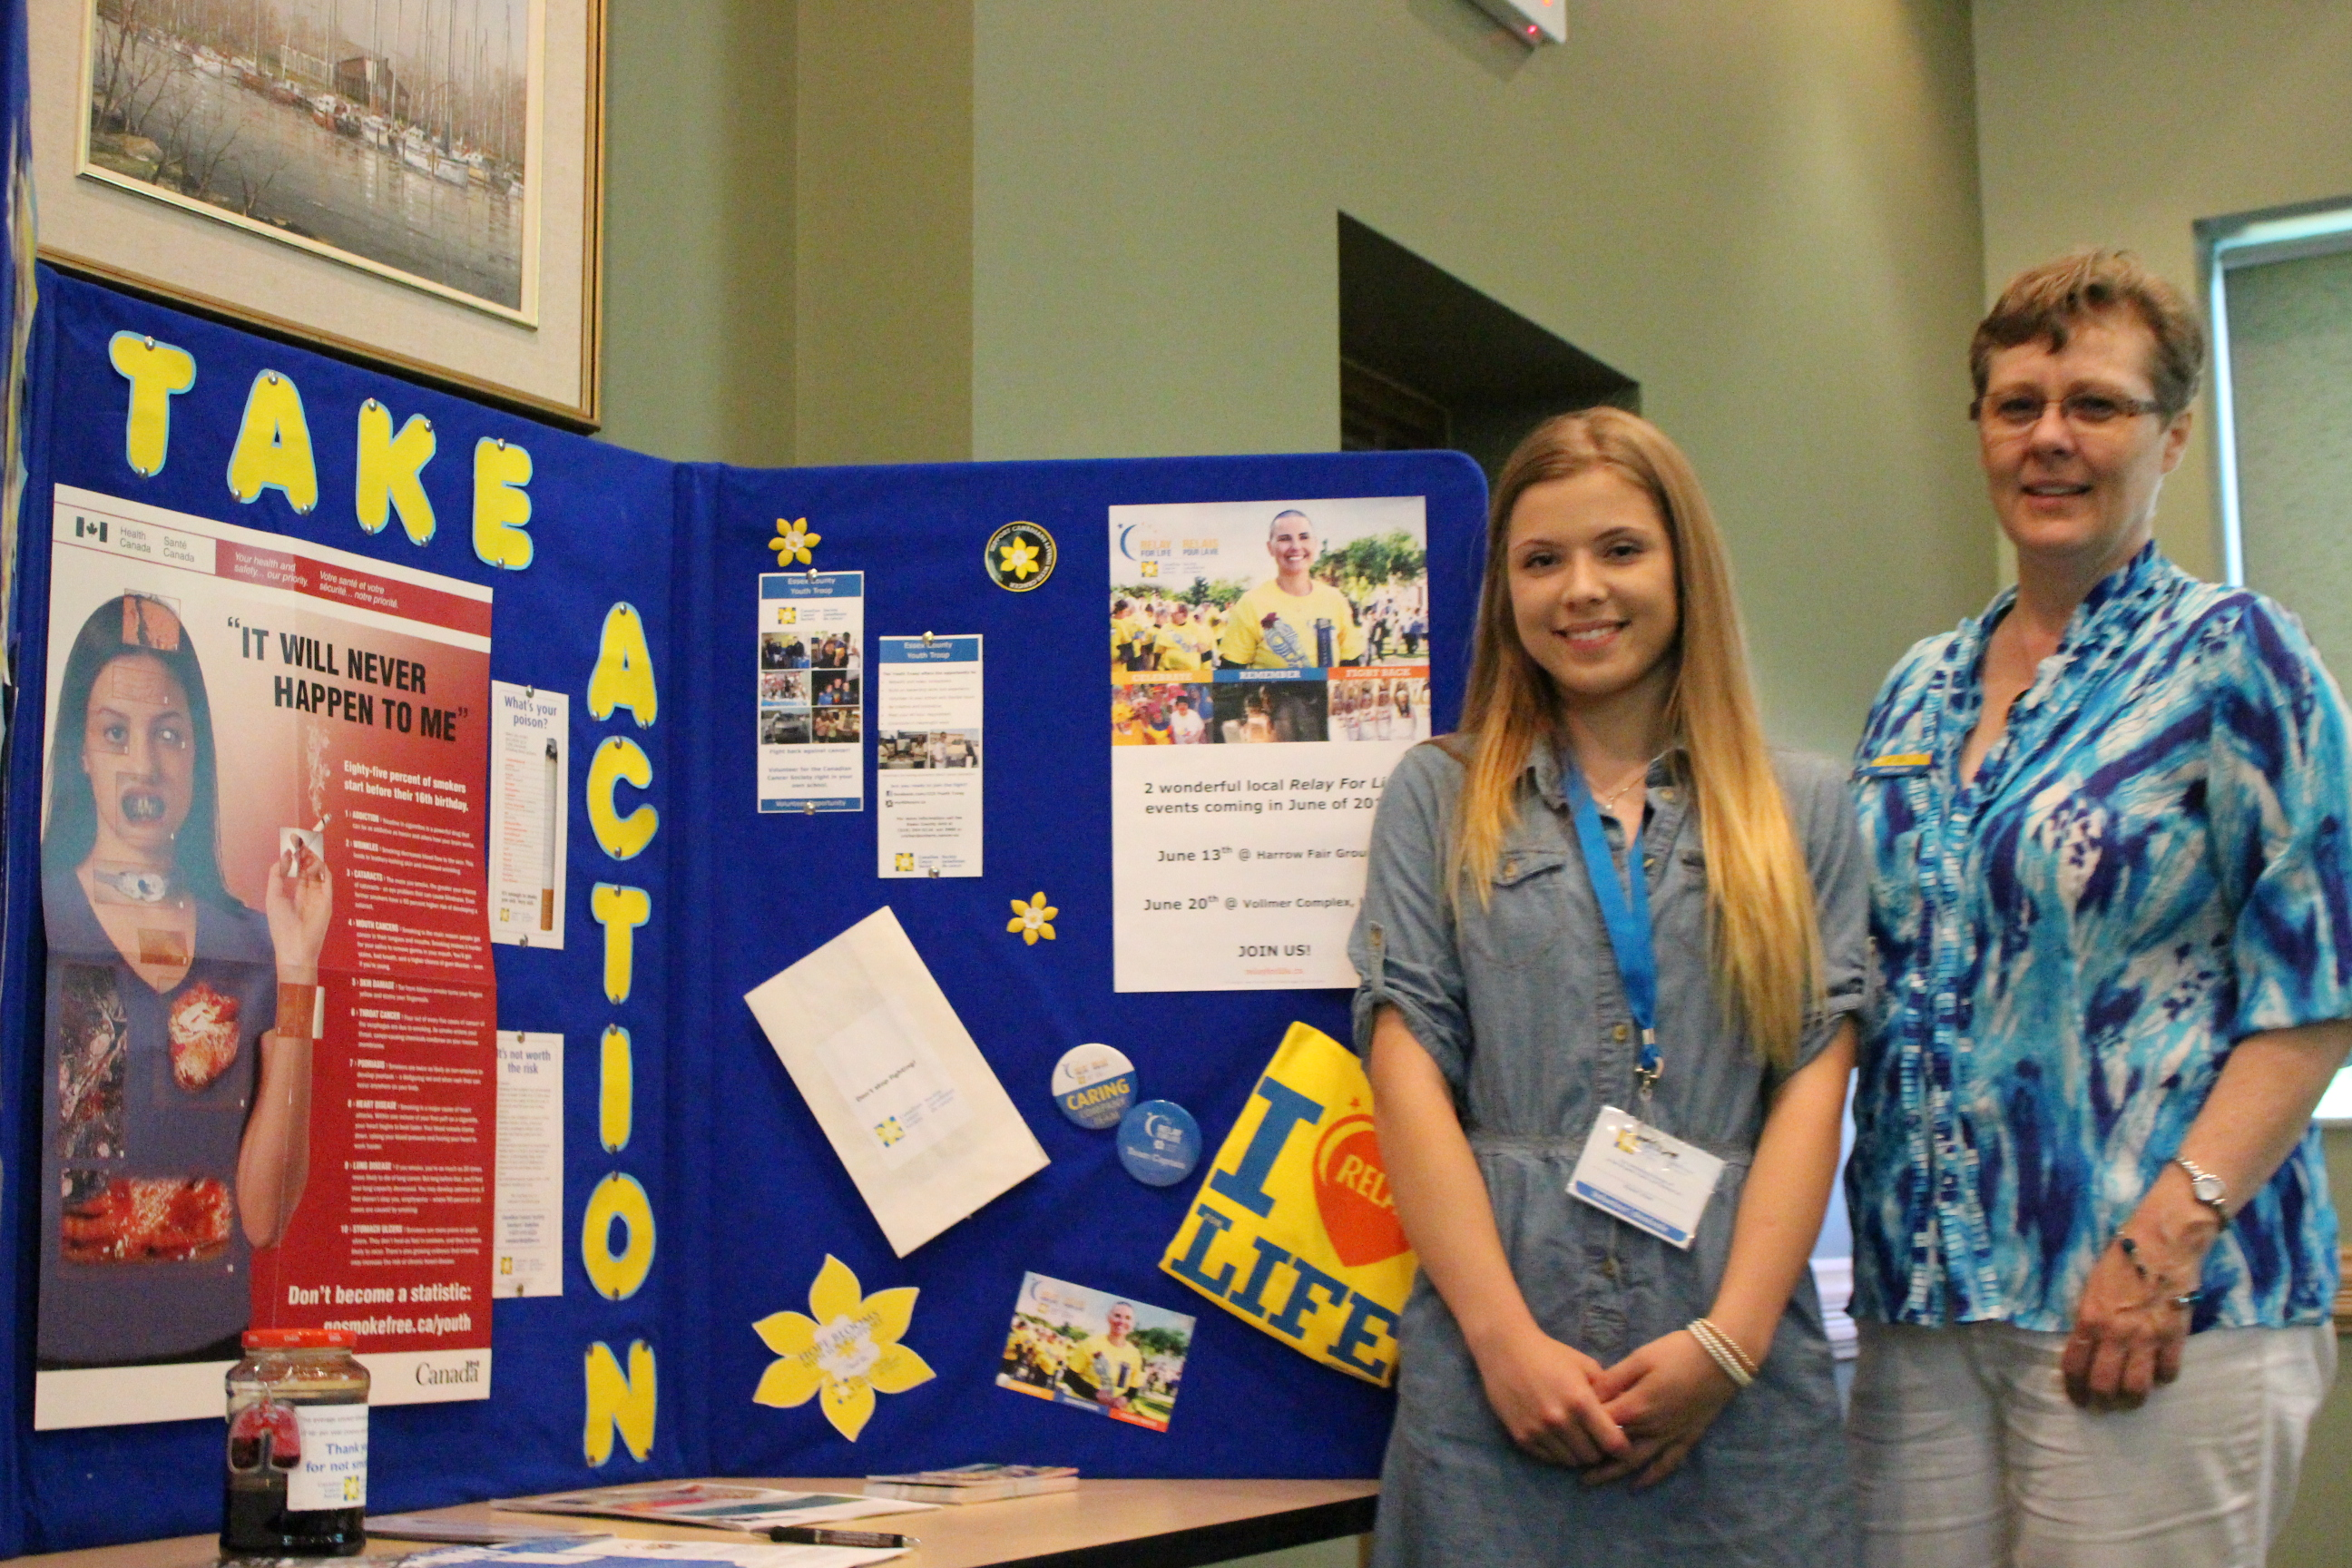 Youth volunteer Samantha Girard (L) and Manager Judy Lund with the Canadian Cancer Society Windsor-Essex branch at an information session in Tecumseh on June 3, 2014. (Photo by Ricardo Veneza)